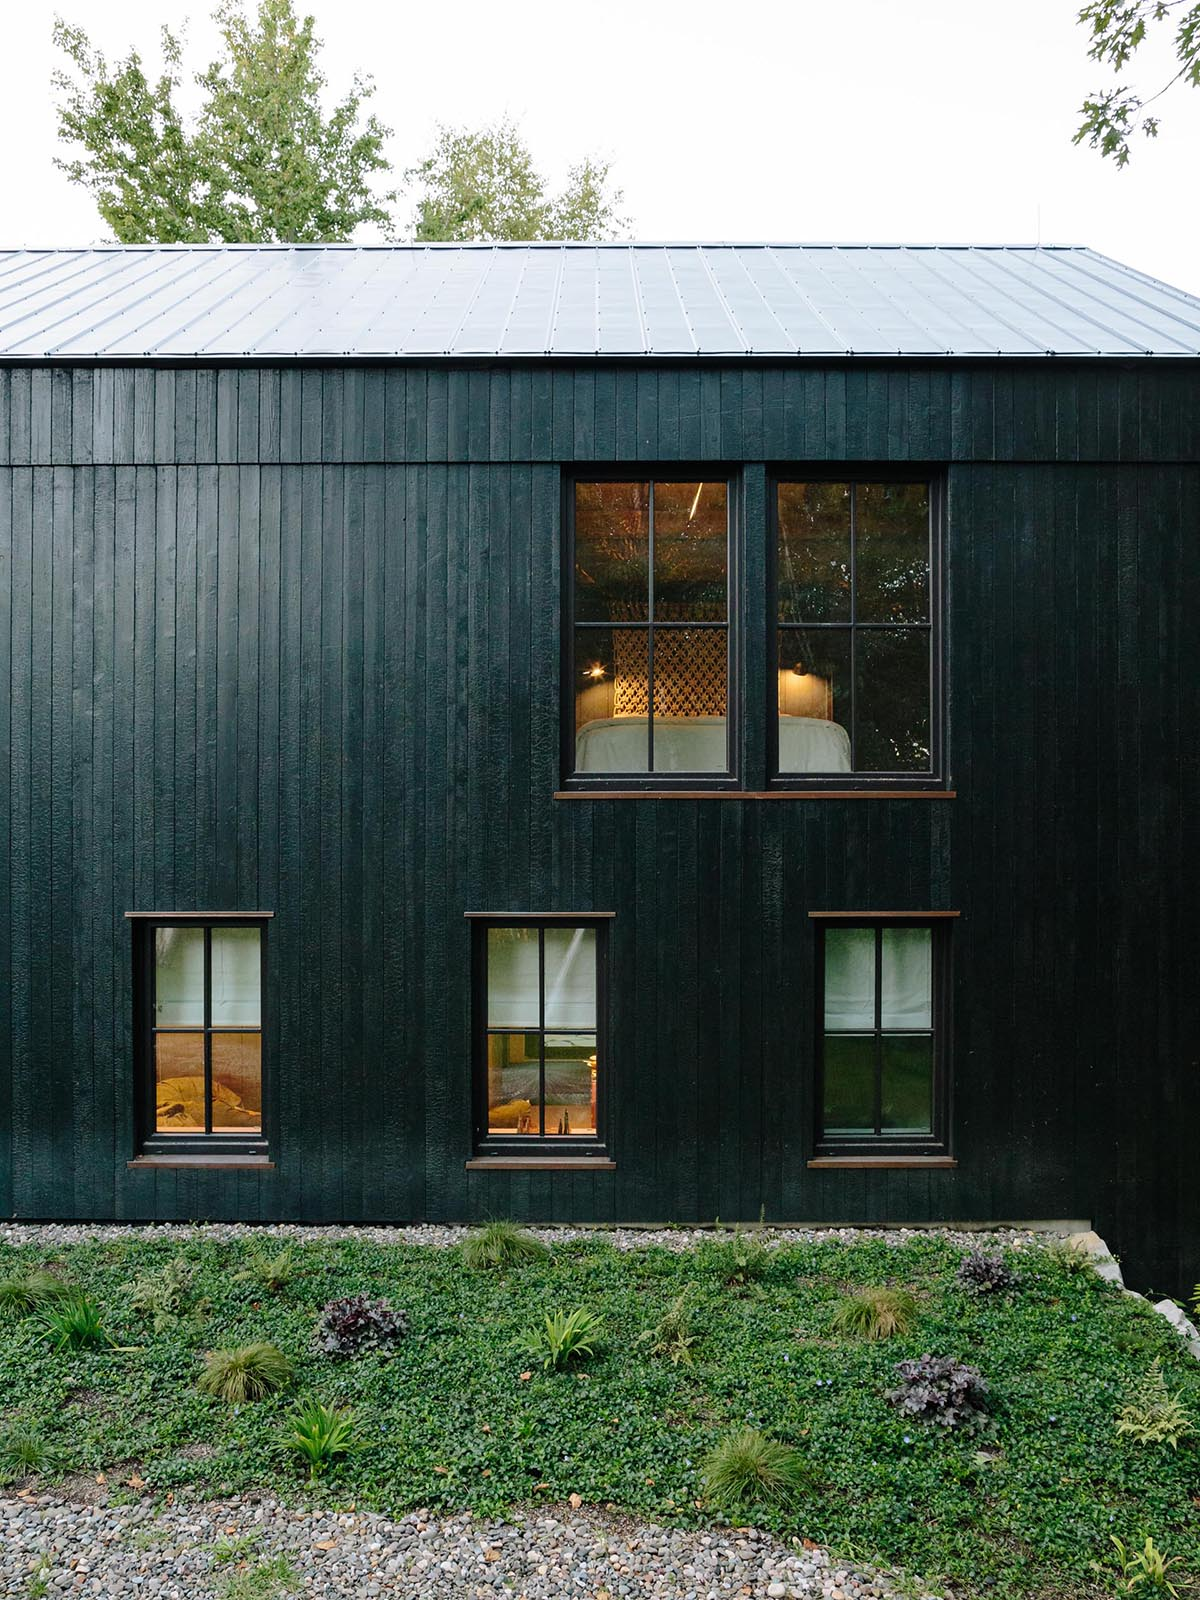 A large cabin-style home with charred cedar siding.